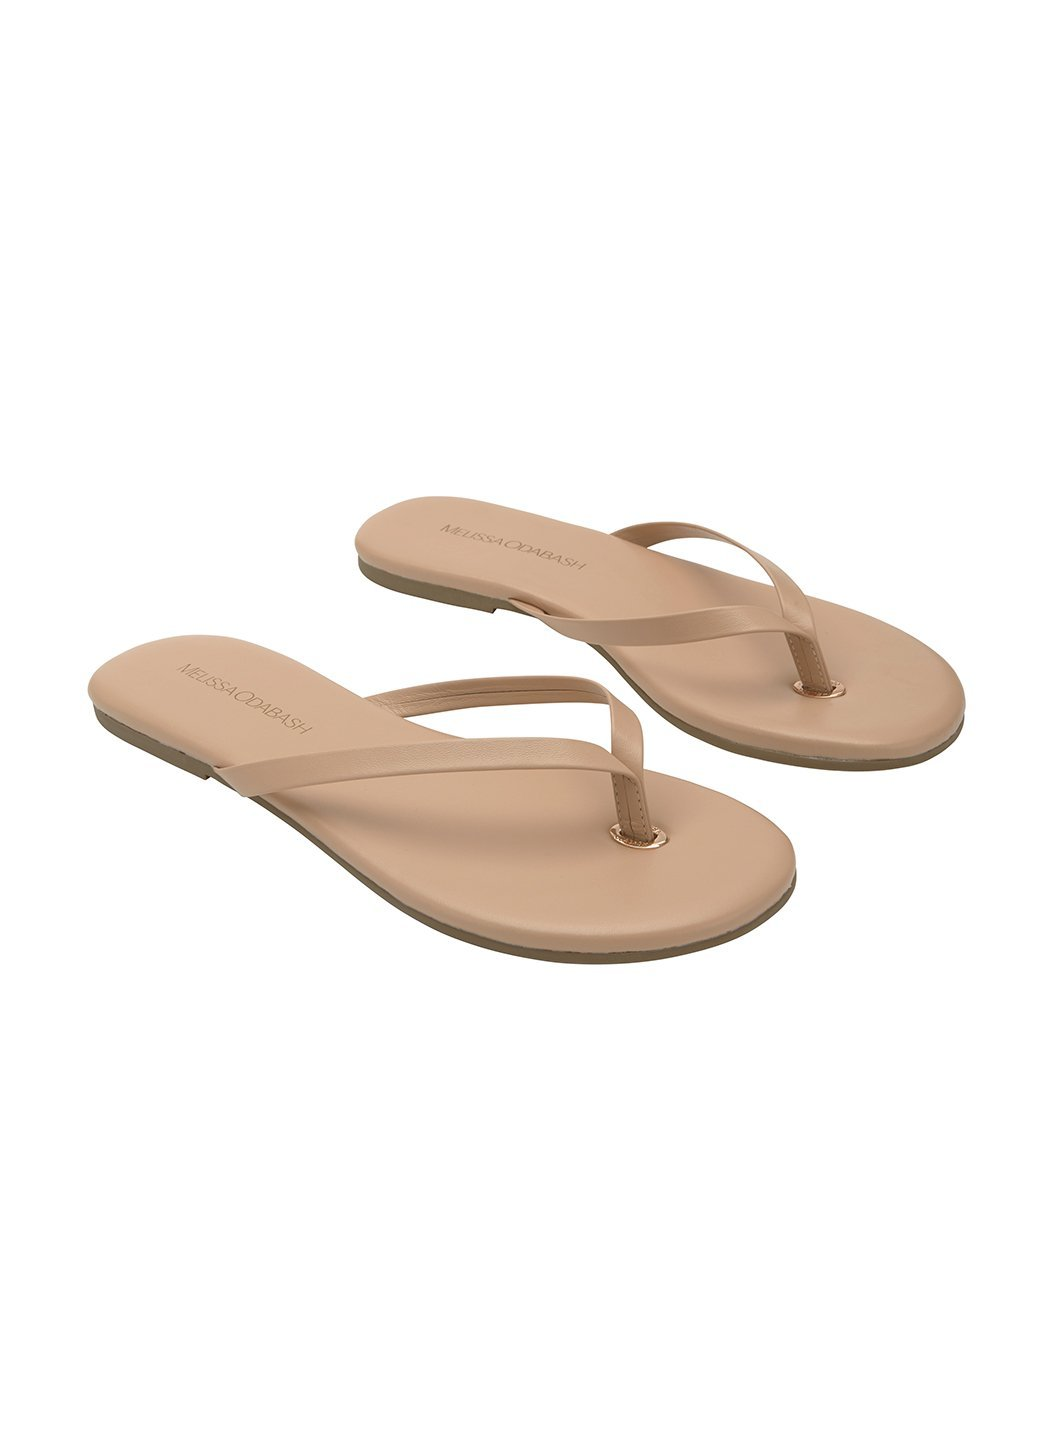 flip flop leather nude 2019 2